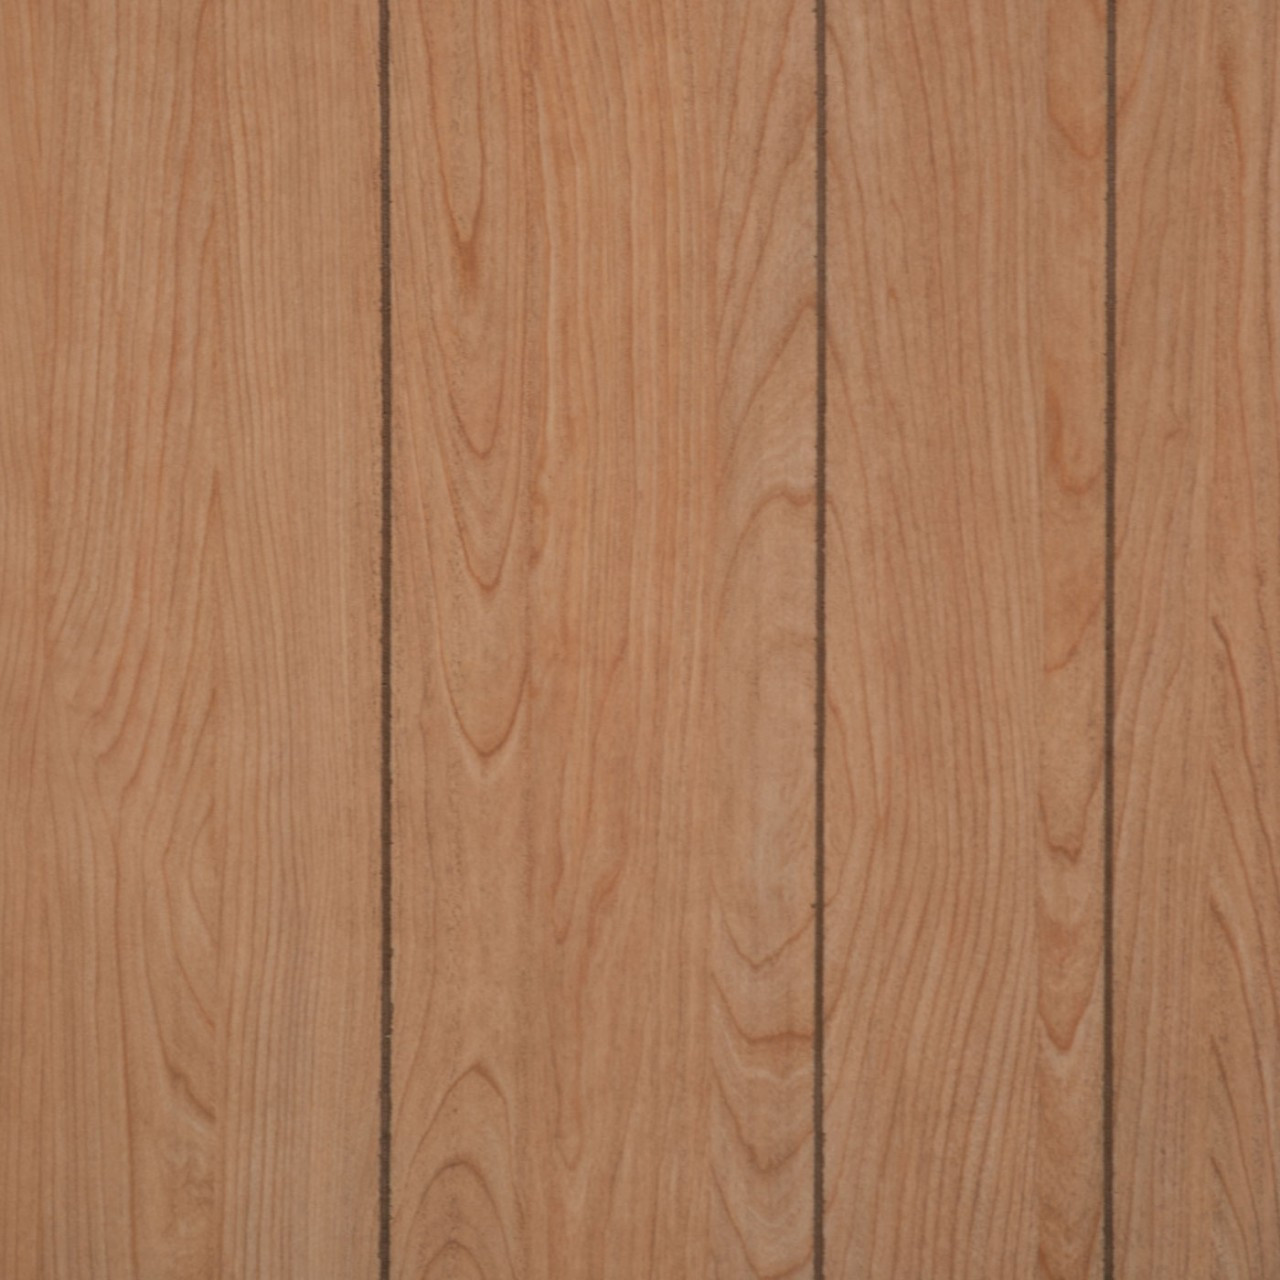 Wood Paneling Islander Cherry Plywood Planks